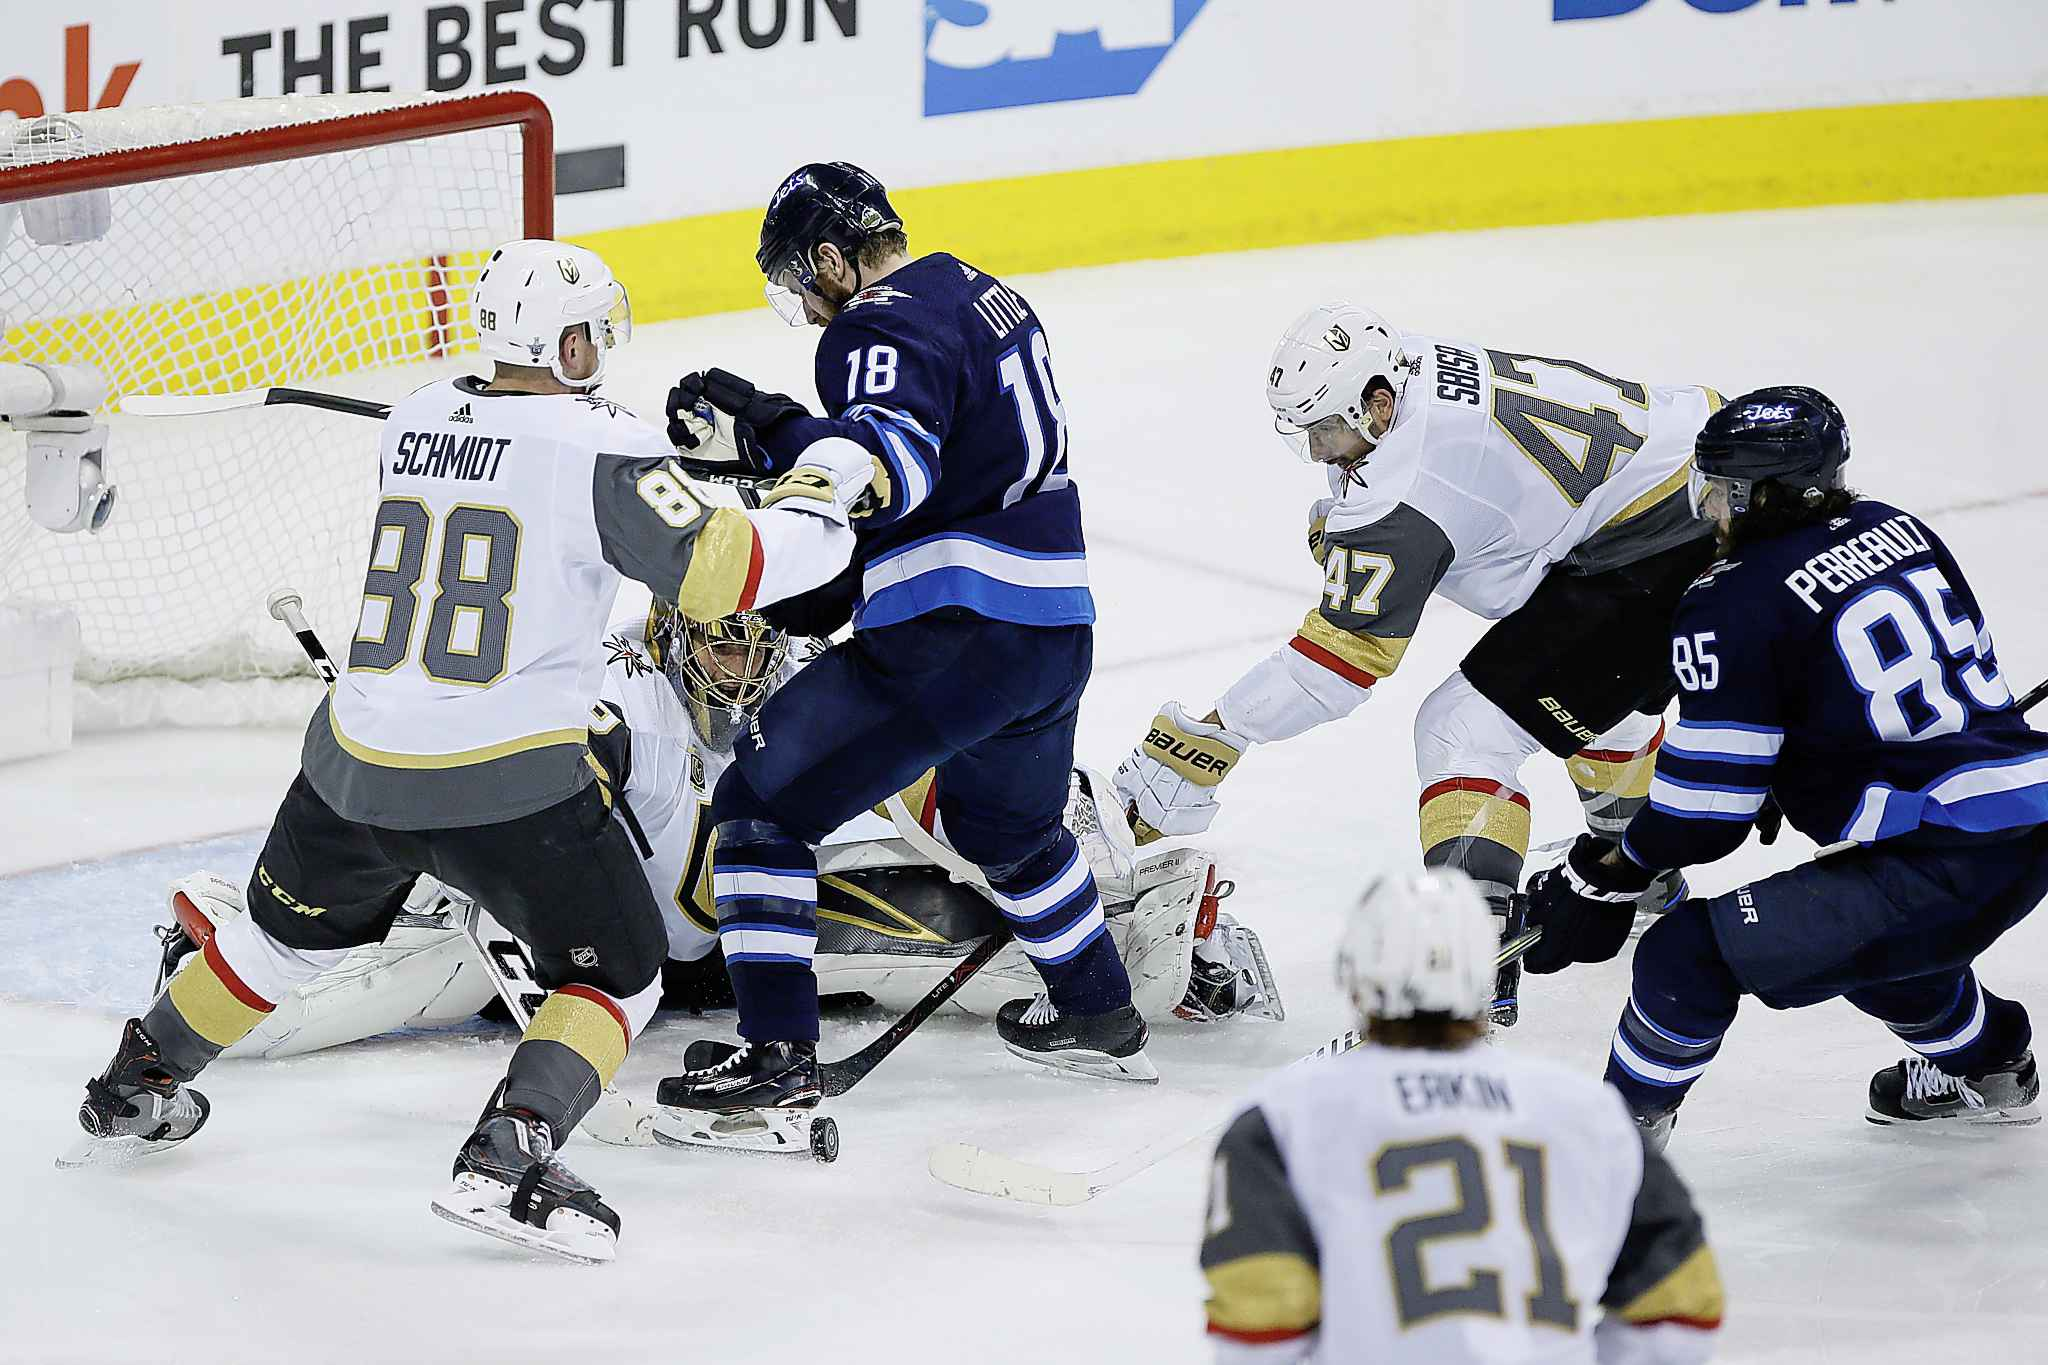 JOHN WOODS / THE CANADIAN PRESS</p><p>Vegas Golden Knights goaltender Marc-Andre Fleury (29) keeps his eye on the puck as Nate Schmidt (88) and Luca Sbisa (47) defend against Winnipeg Jets&#39; Bryan Little (18) and Mathieu Perreault (85) Saturday at Bell MTS Place. The Golden Knights will be looking to rebound from their Game 1 loss.</p>